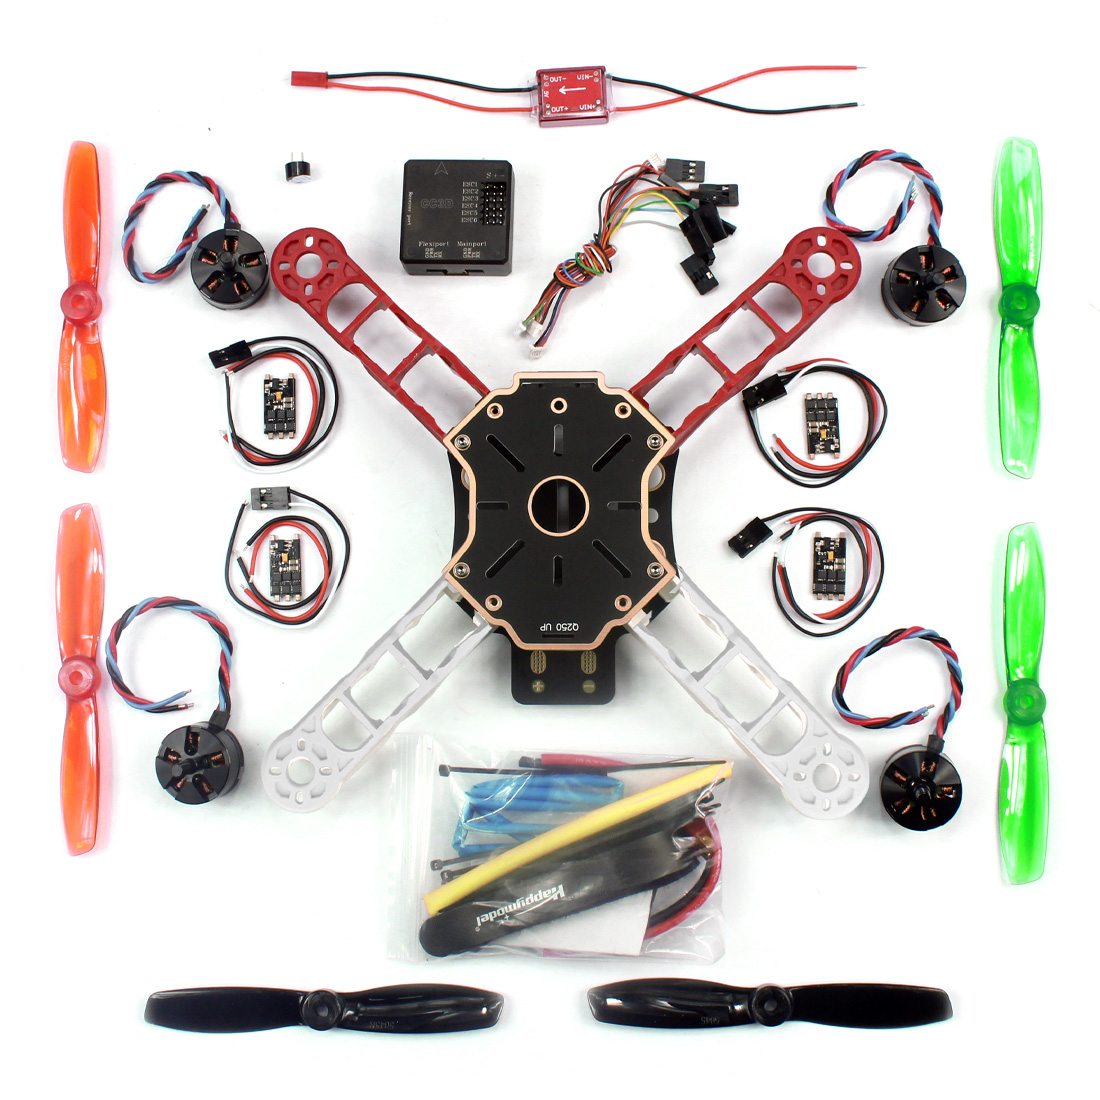 hight resolution of f11069 mini 250 rc quadcopter combo arf q250 frame cc3d flight controller emax simon 12a esc brushless motor mt2204 cw ccw fs in parts accessories from